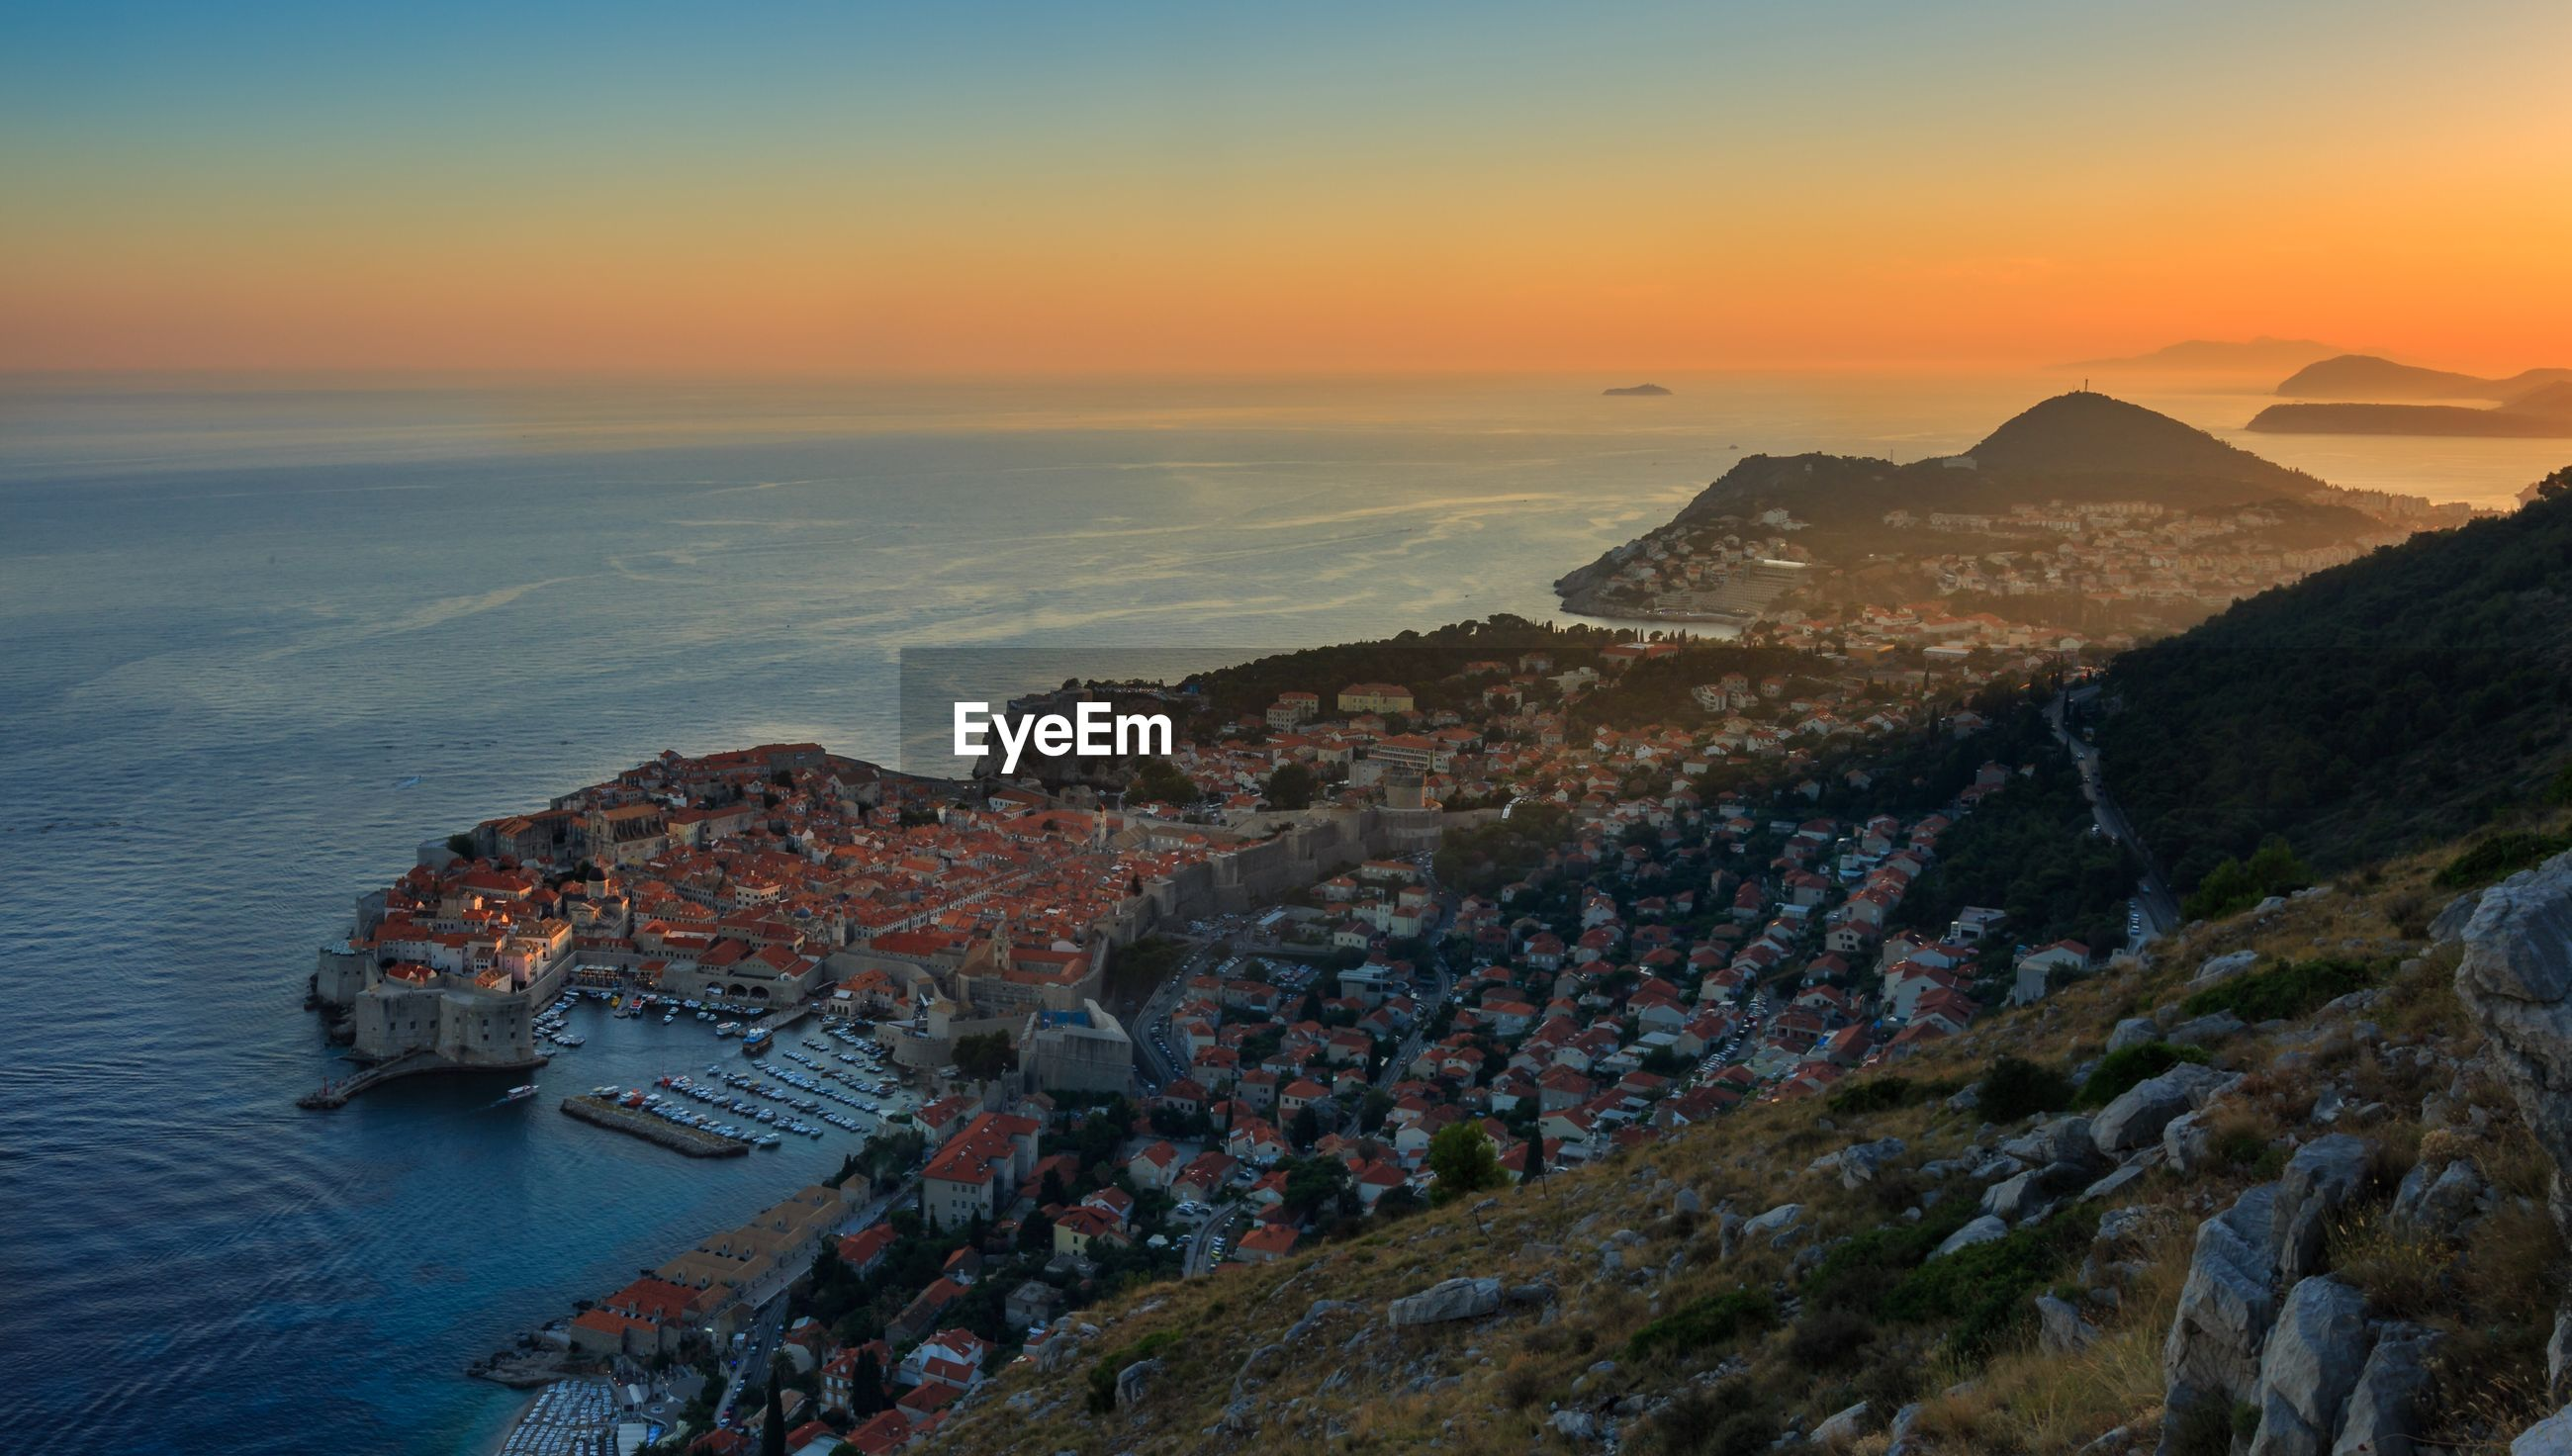 HIGH ANGLE VIEW OF TOWN BY SEA AT SUNSET